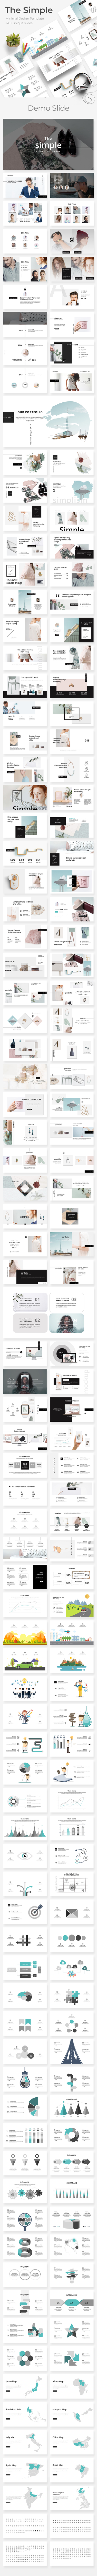 The Simple Minimal Google Slide Template - Google Slides Presentation Templates